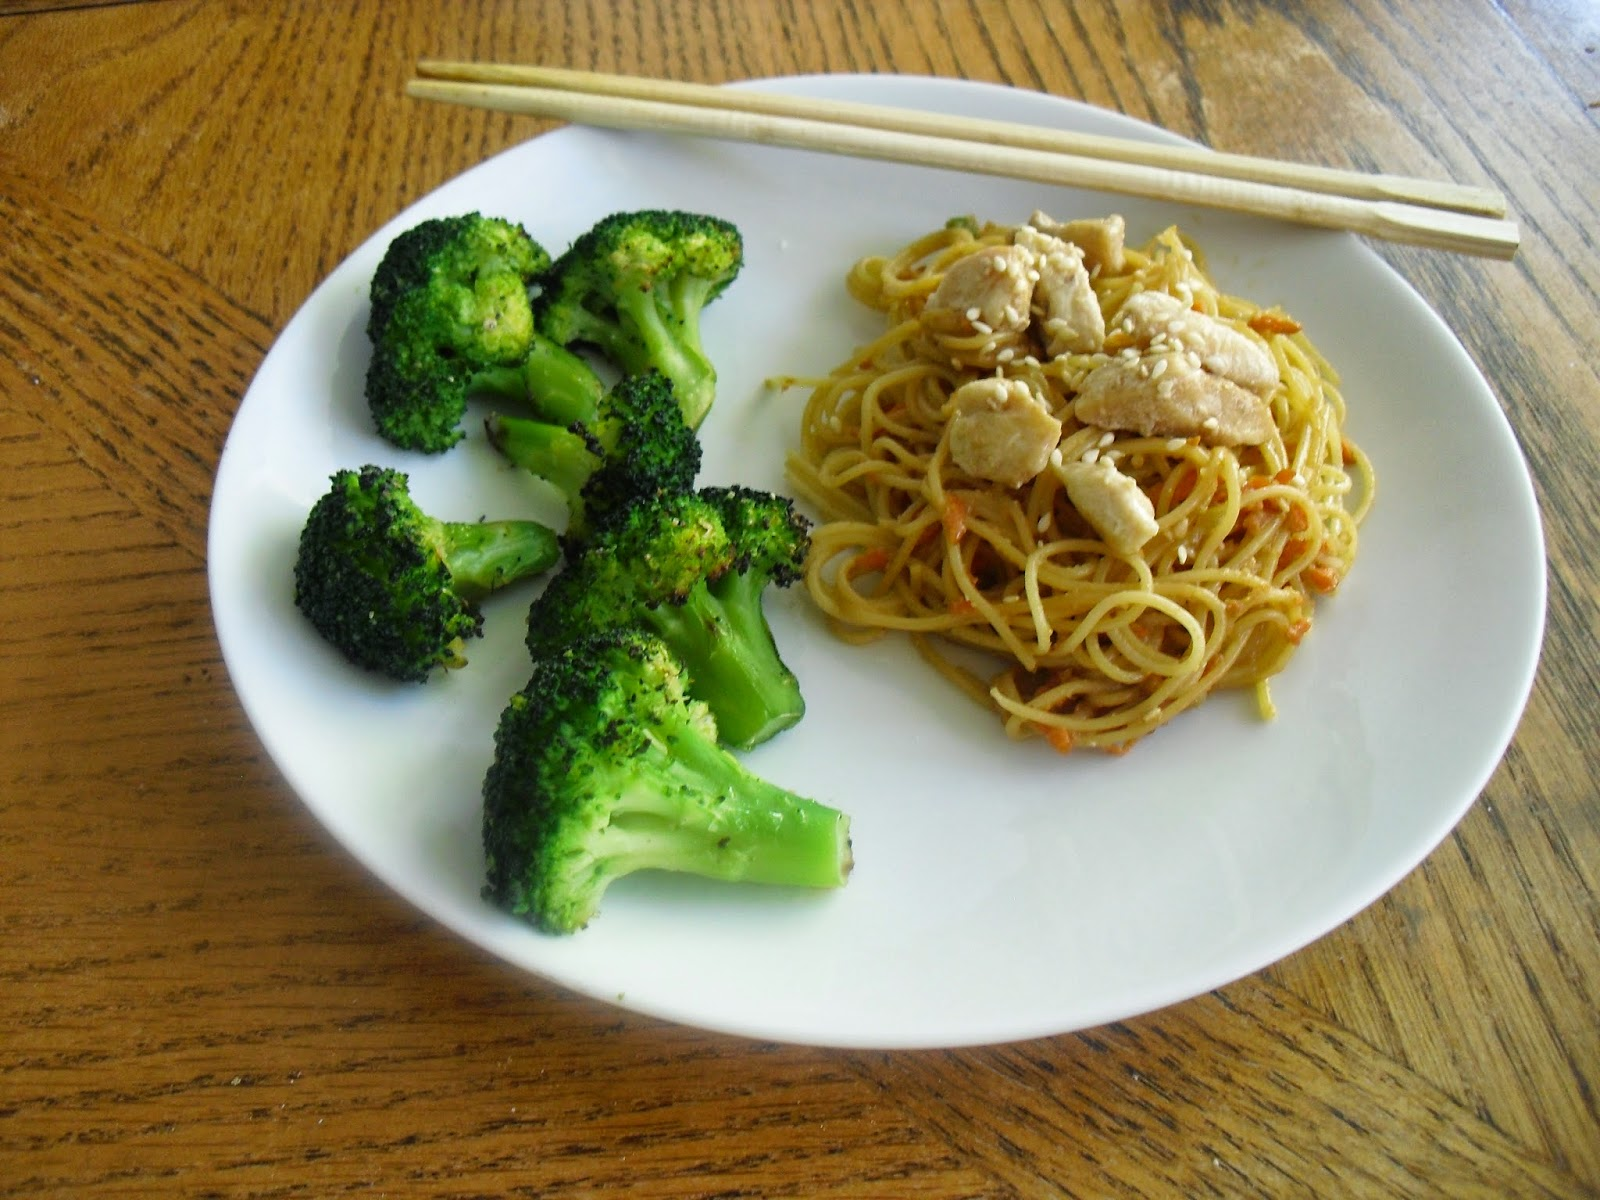 plate with chopsticks